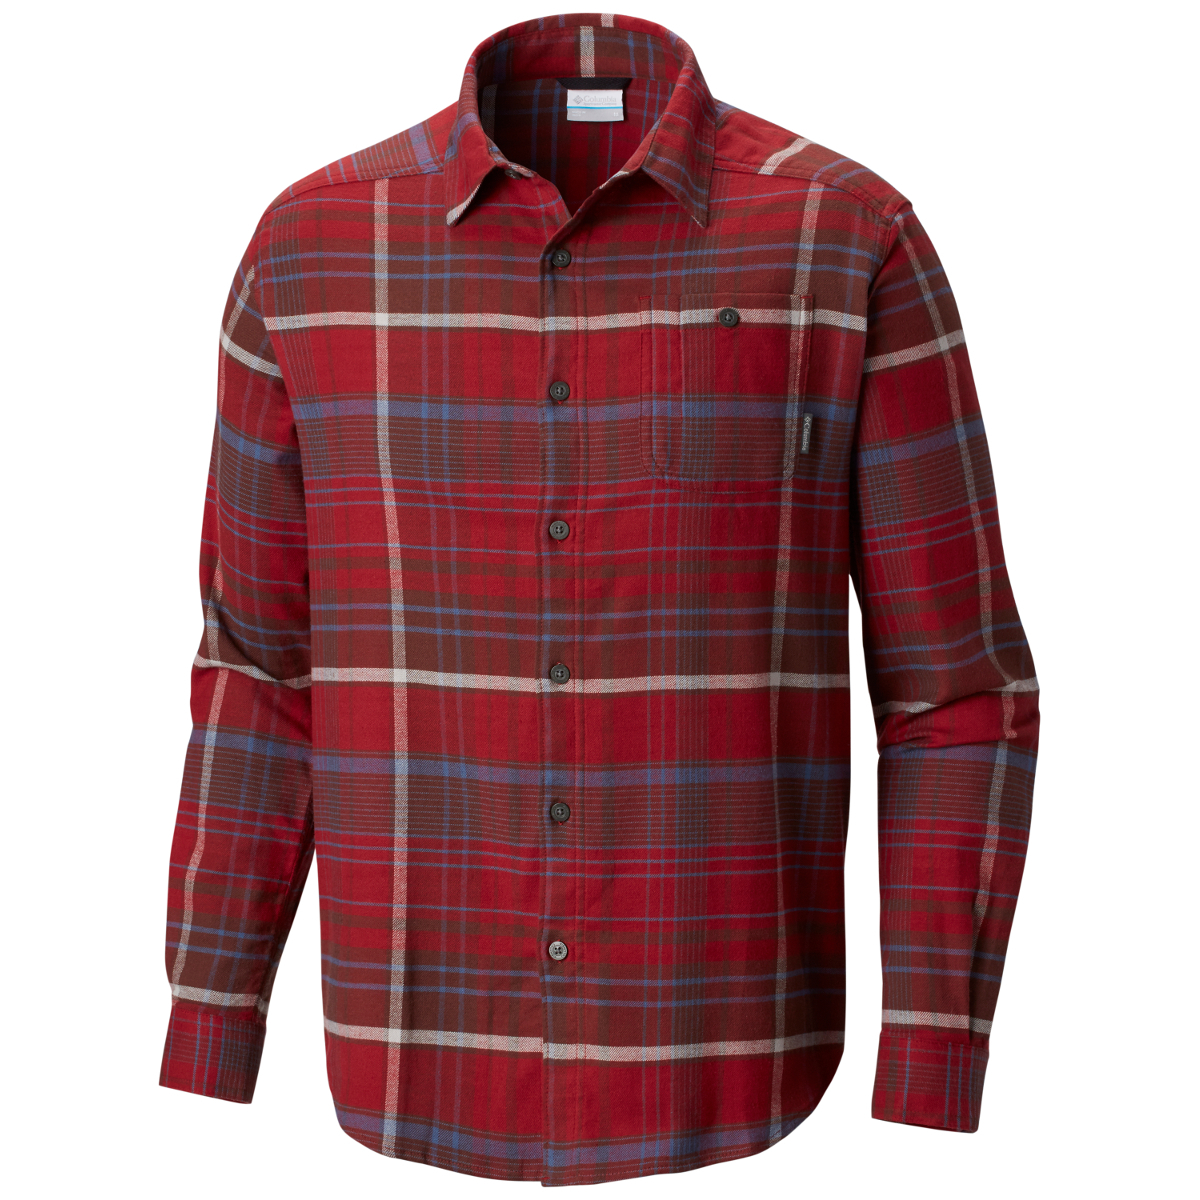 Columbia Men's Cornell Woods Flannel Long-Sleeve Shirt - Red, XL